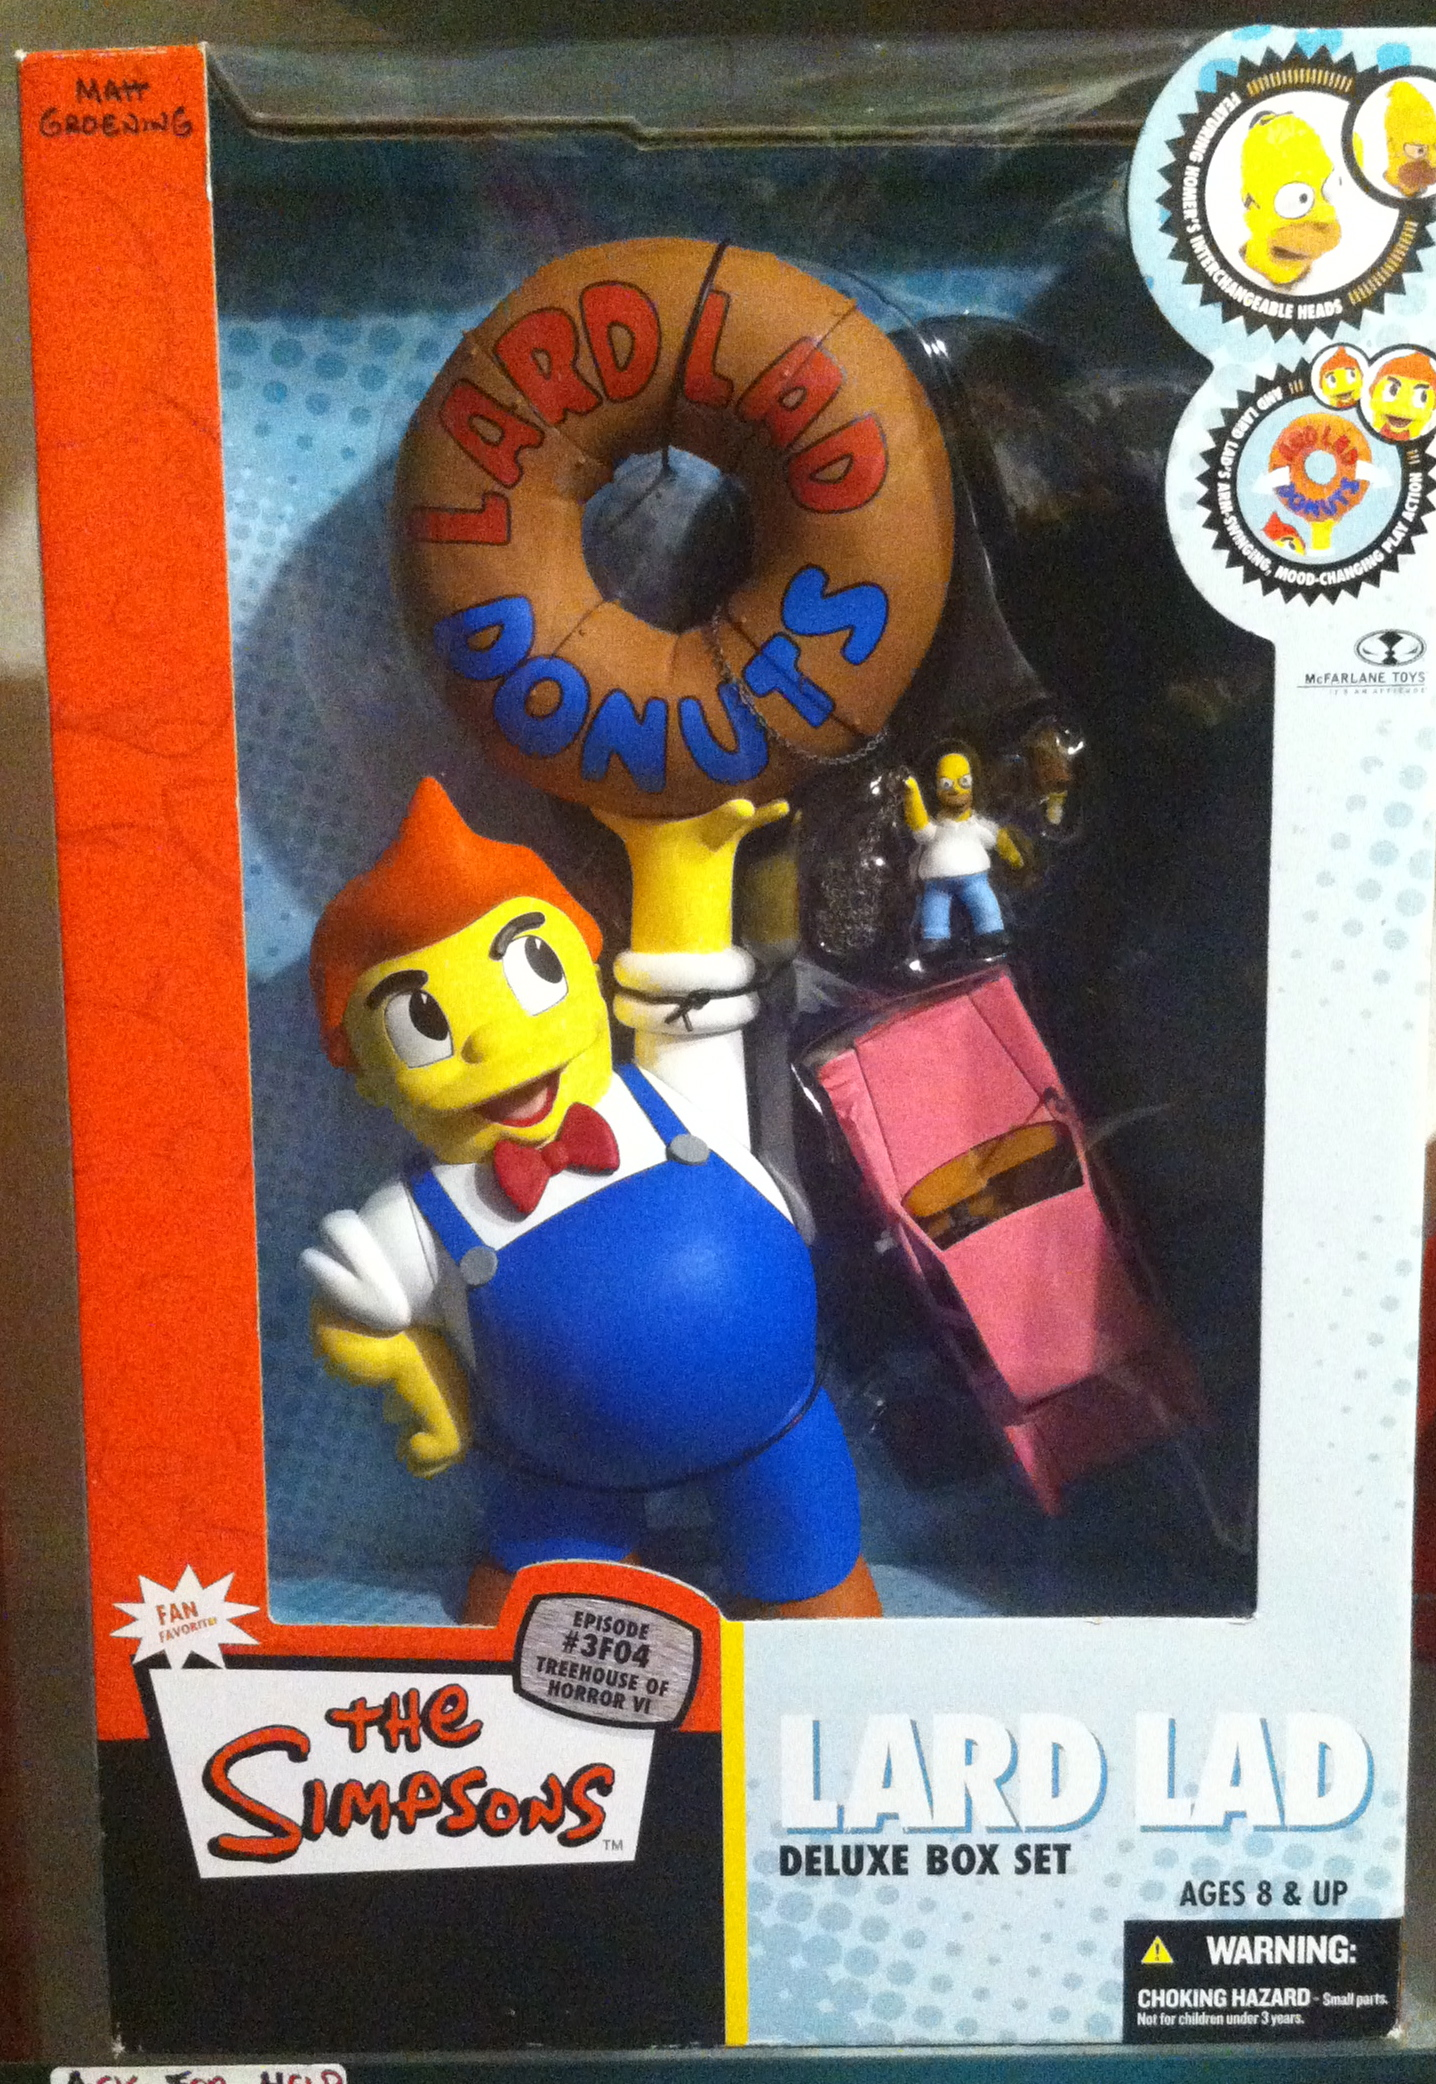 awesome kitchen gadgets teal island mcfarlane toys the simpsons action figure deluxe boxed set ...